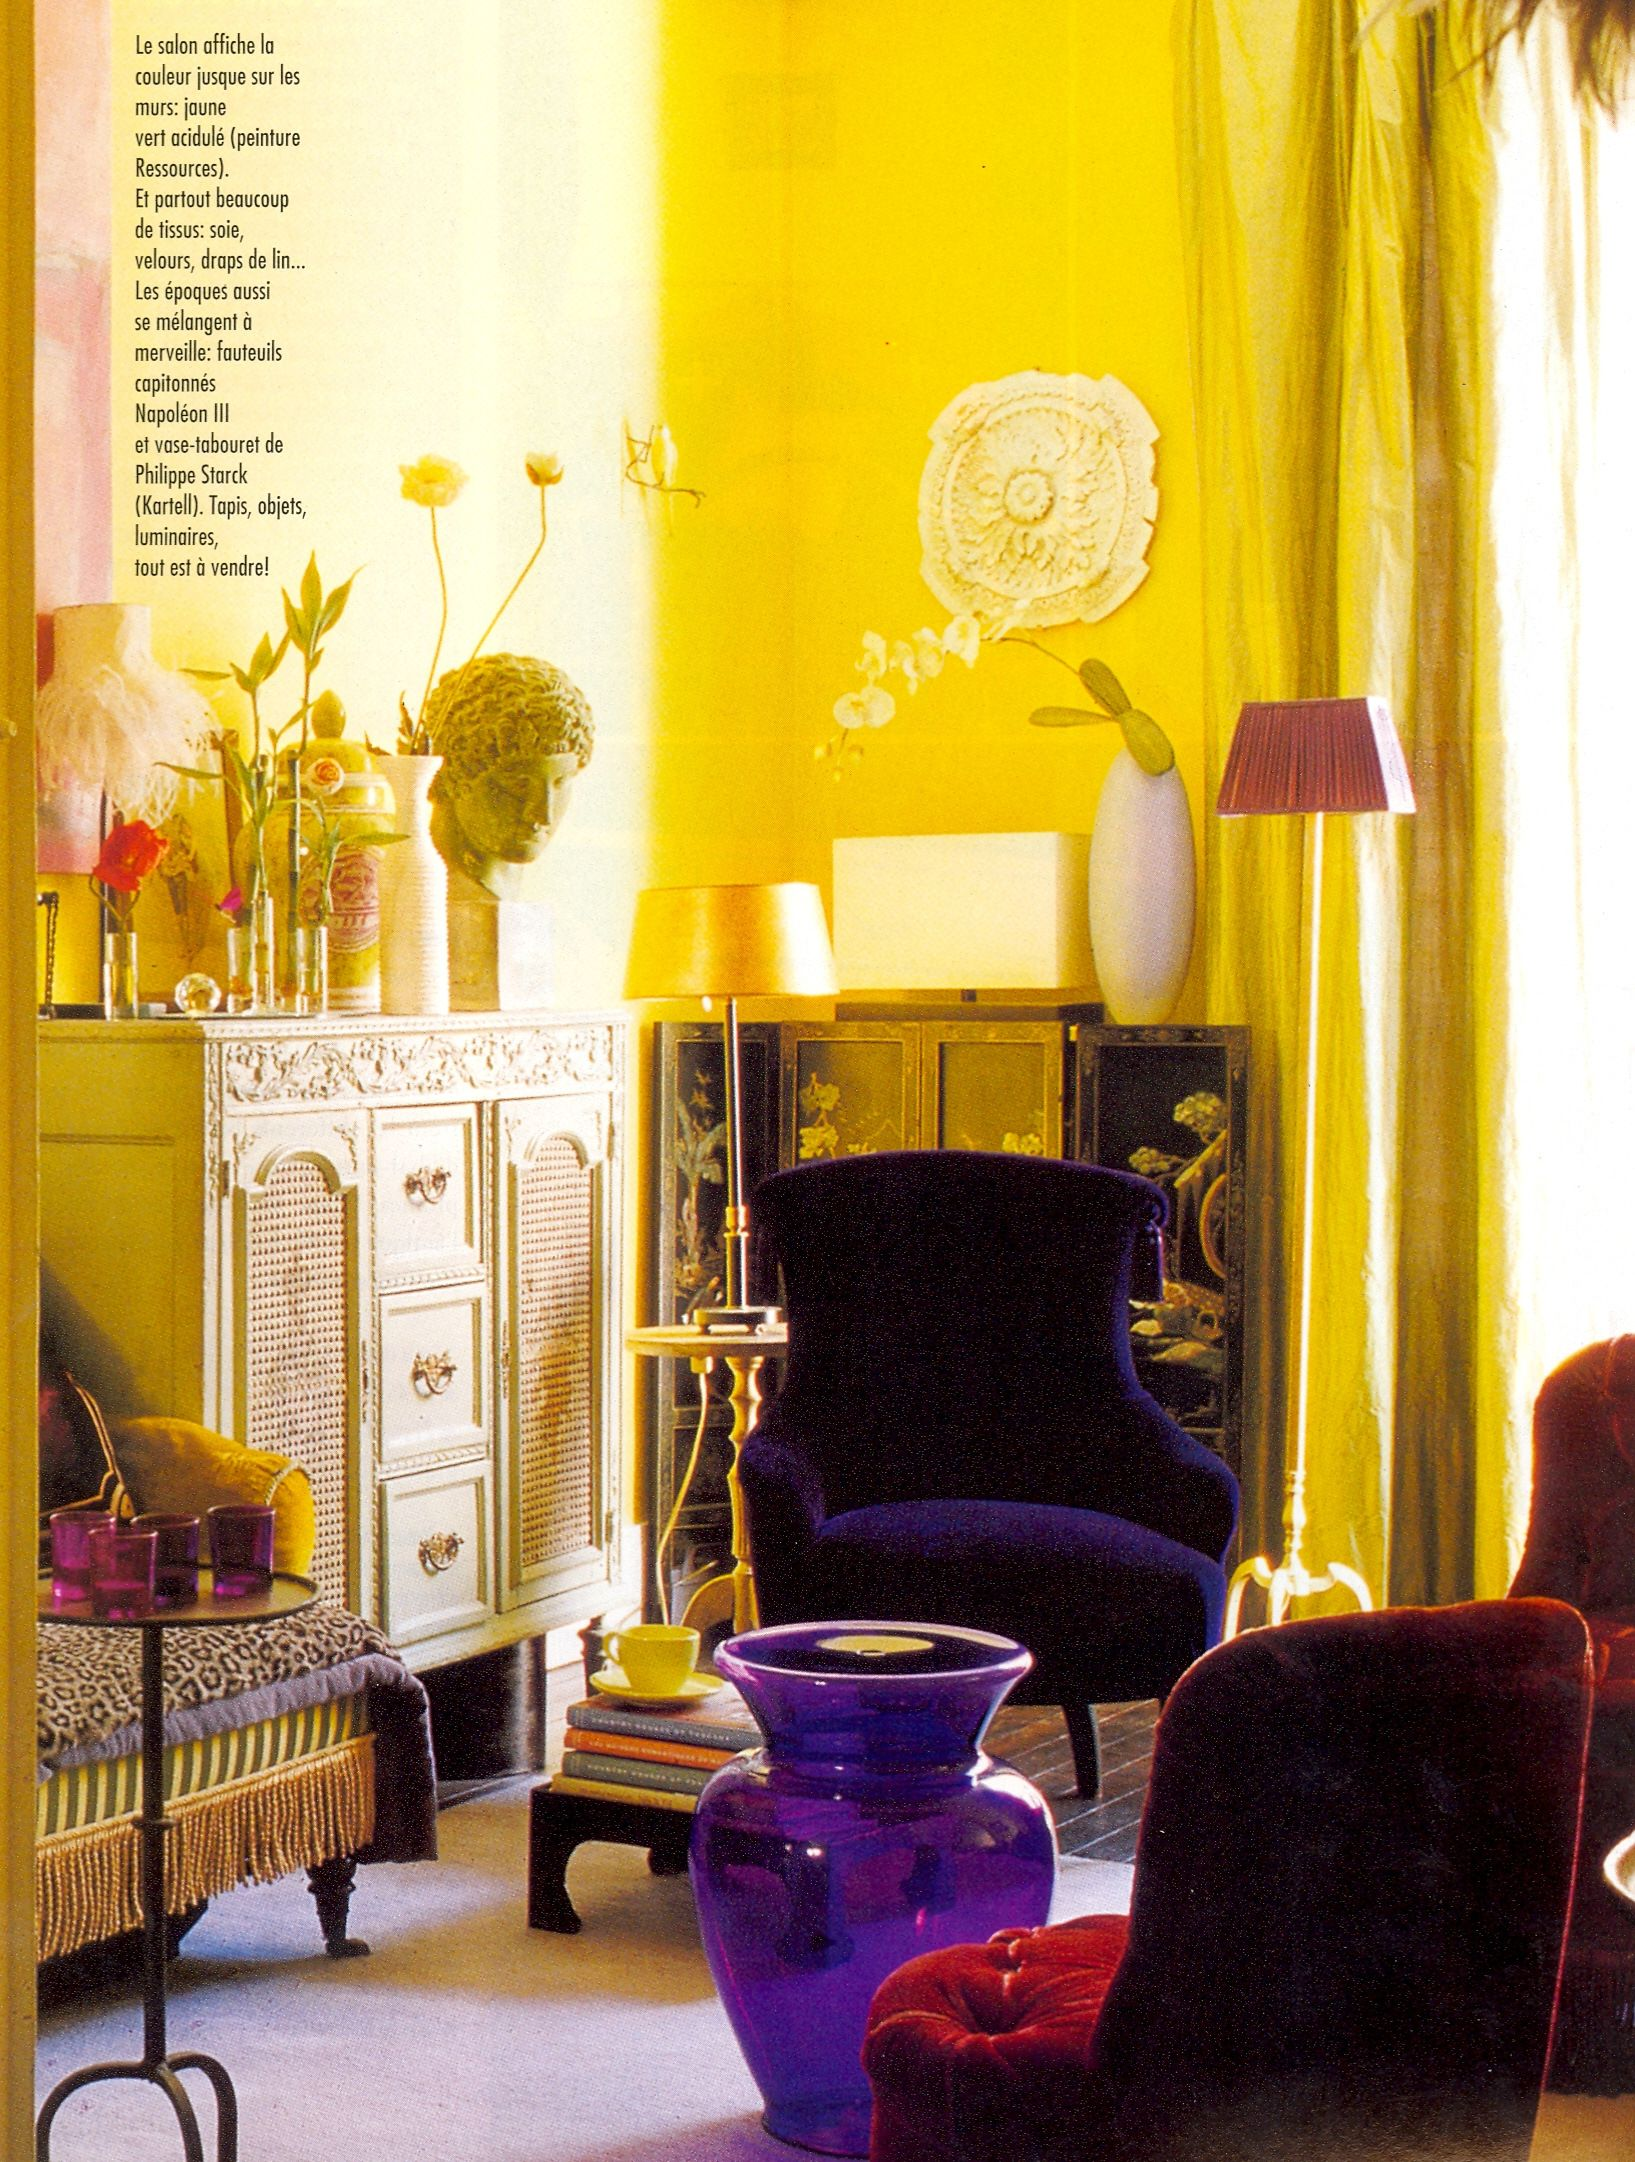 Bohemian Style Living Room With Lemon Yellow Walls And A Violet Purple  Upholstered Chair Part 74